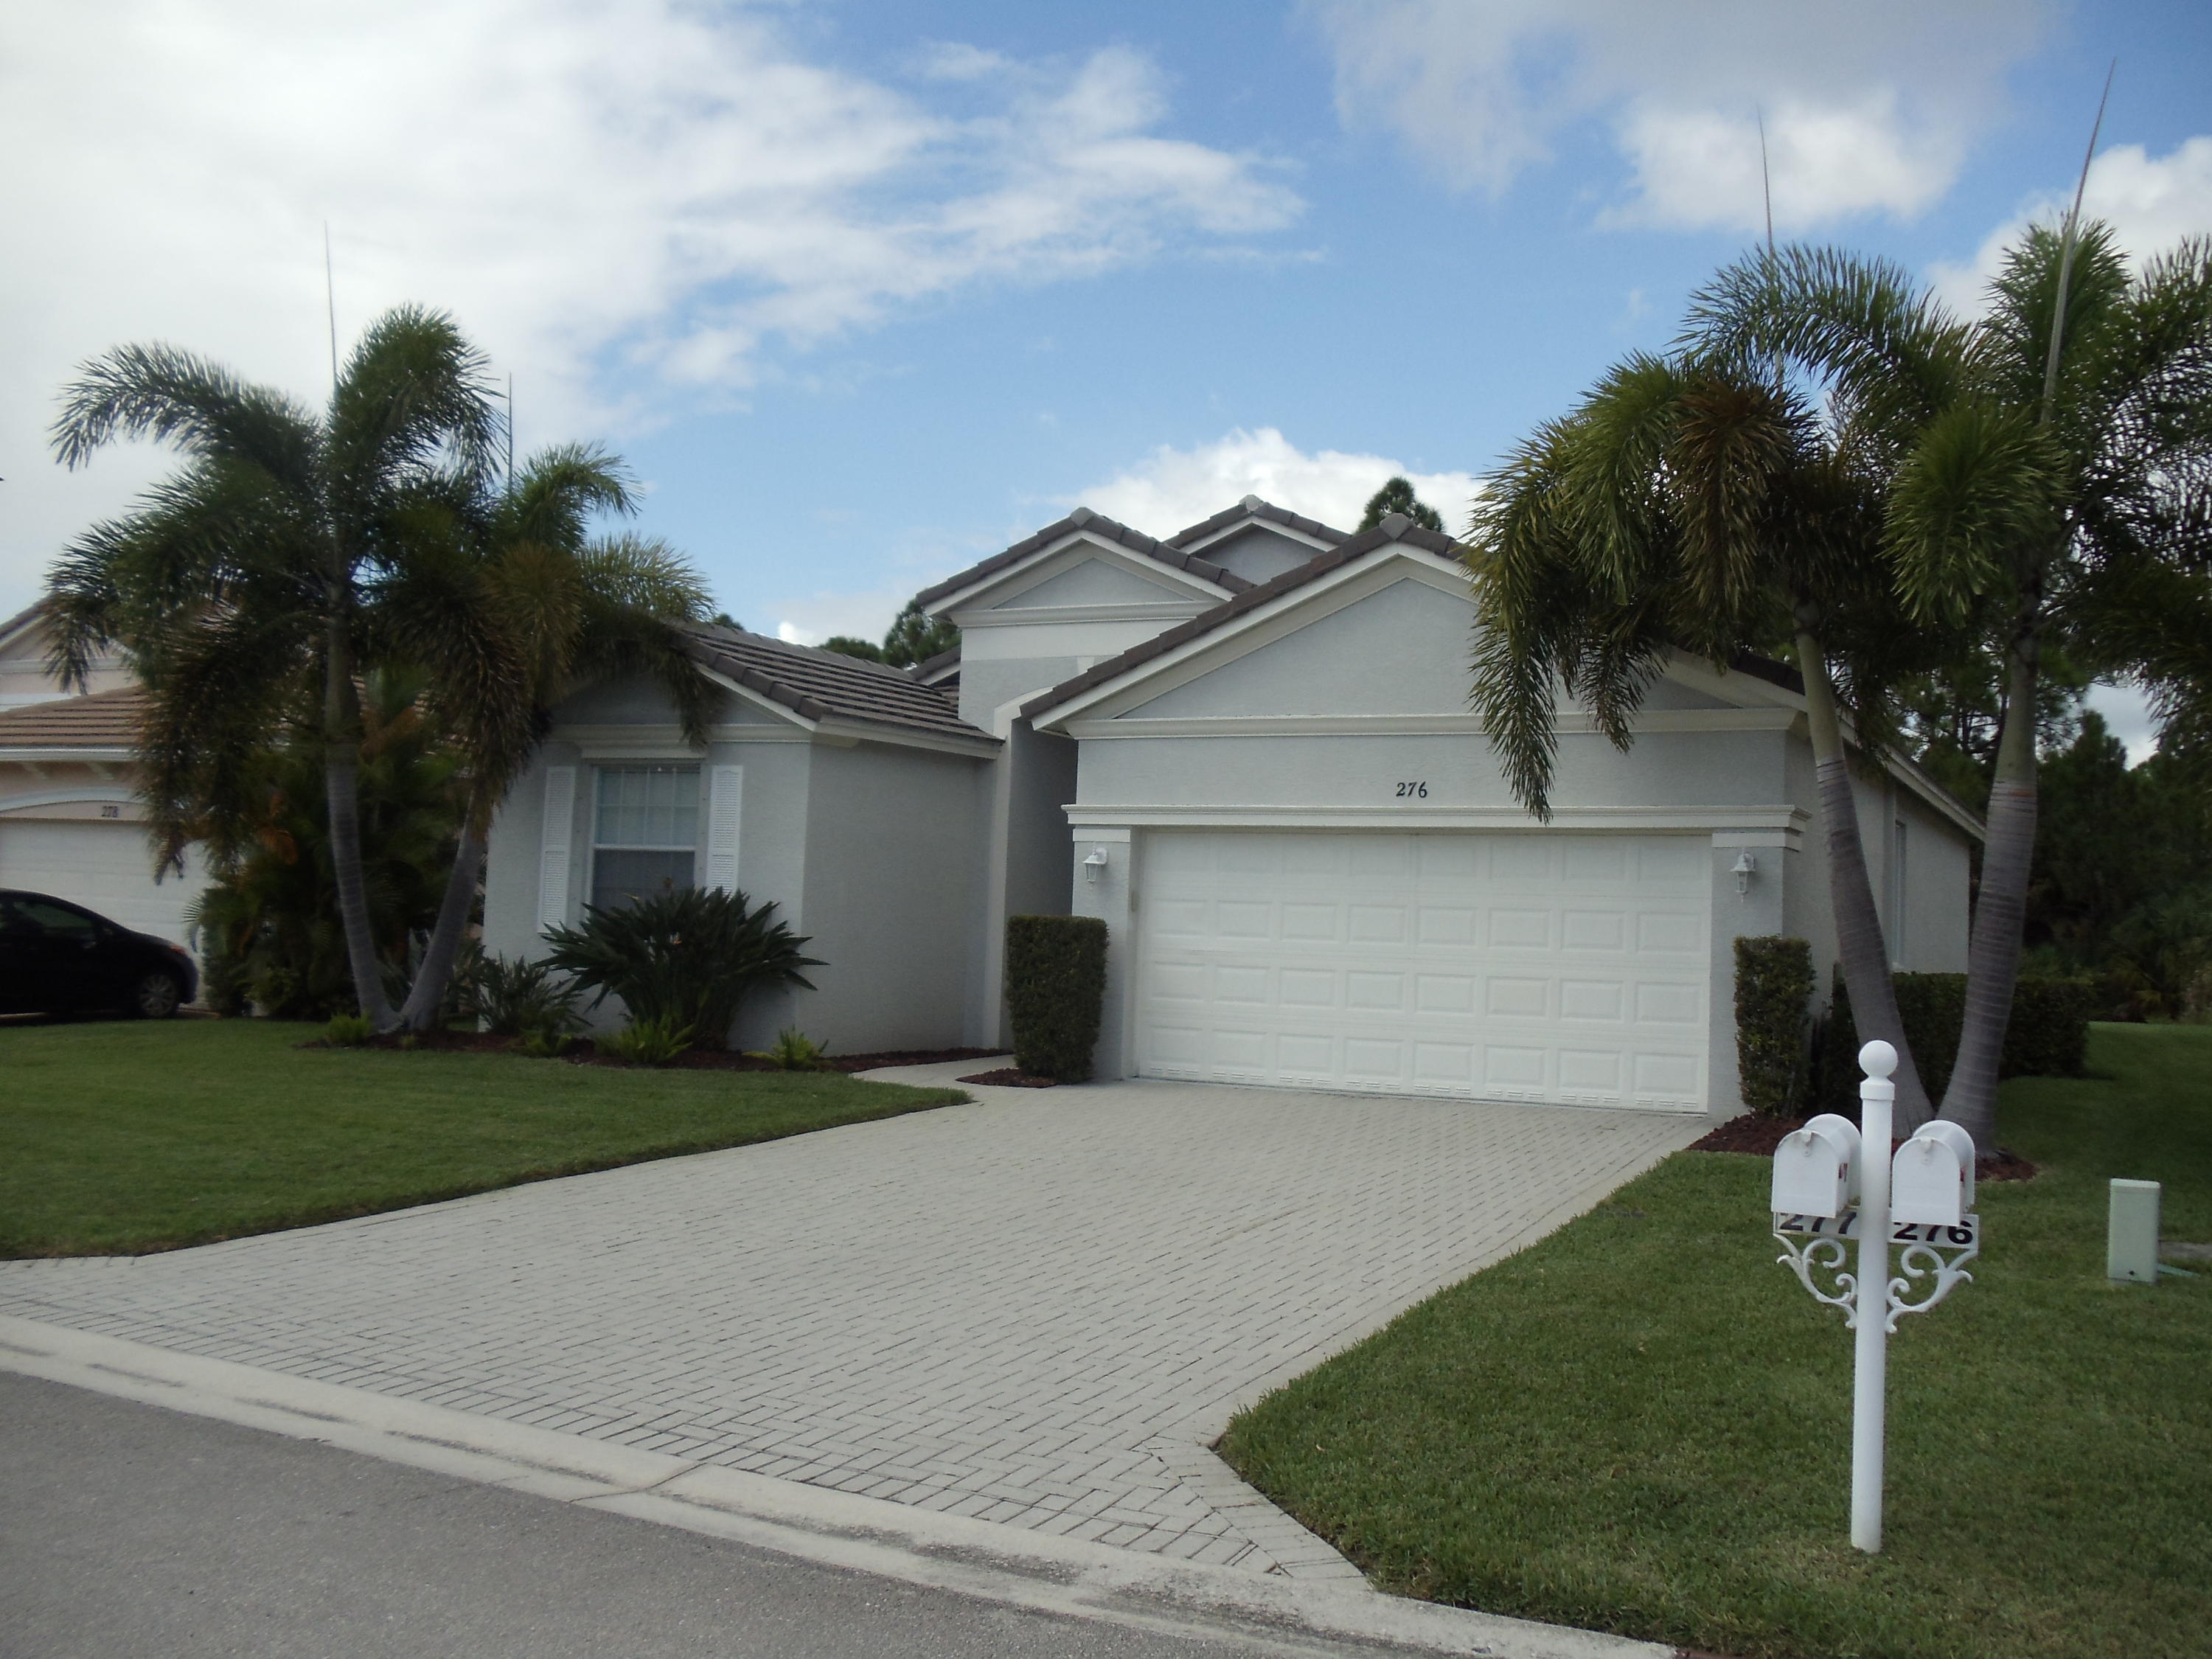 LAKEFOREST AT ST LUCIE WEST PHASE 1 HOMES